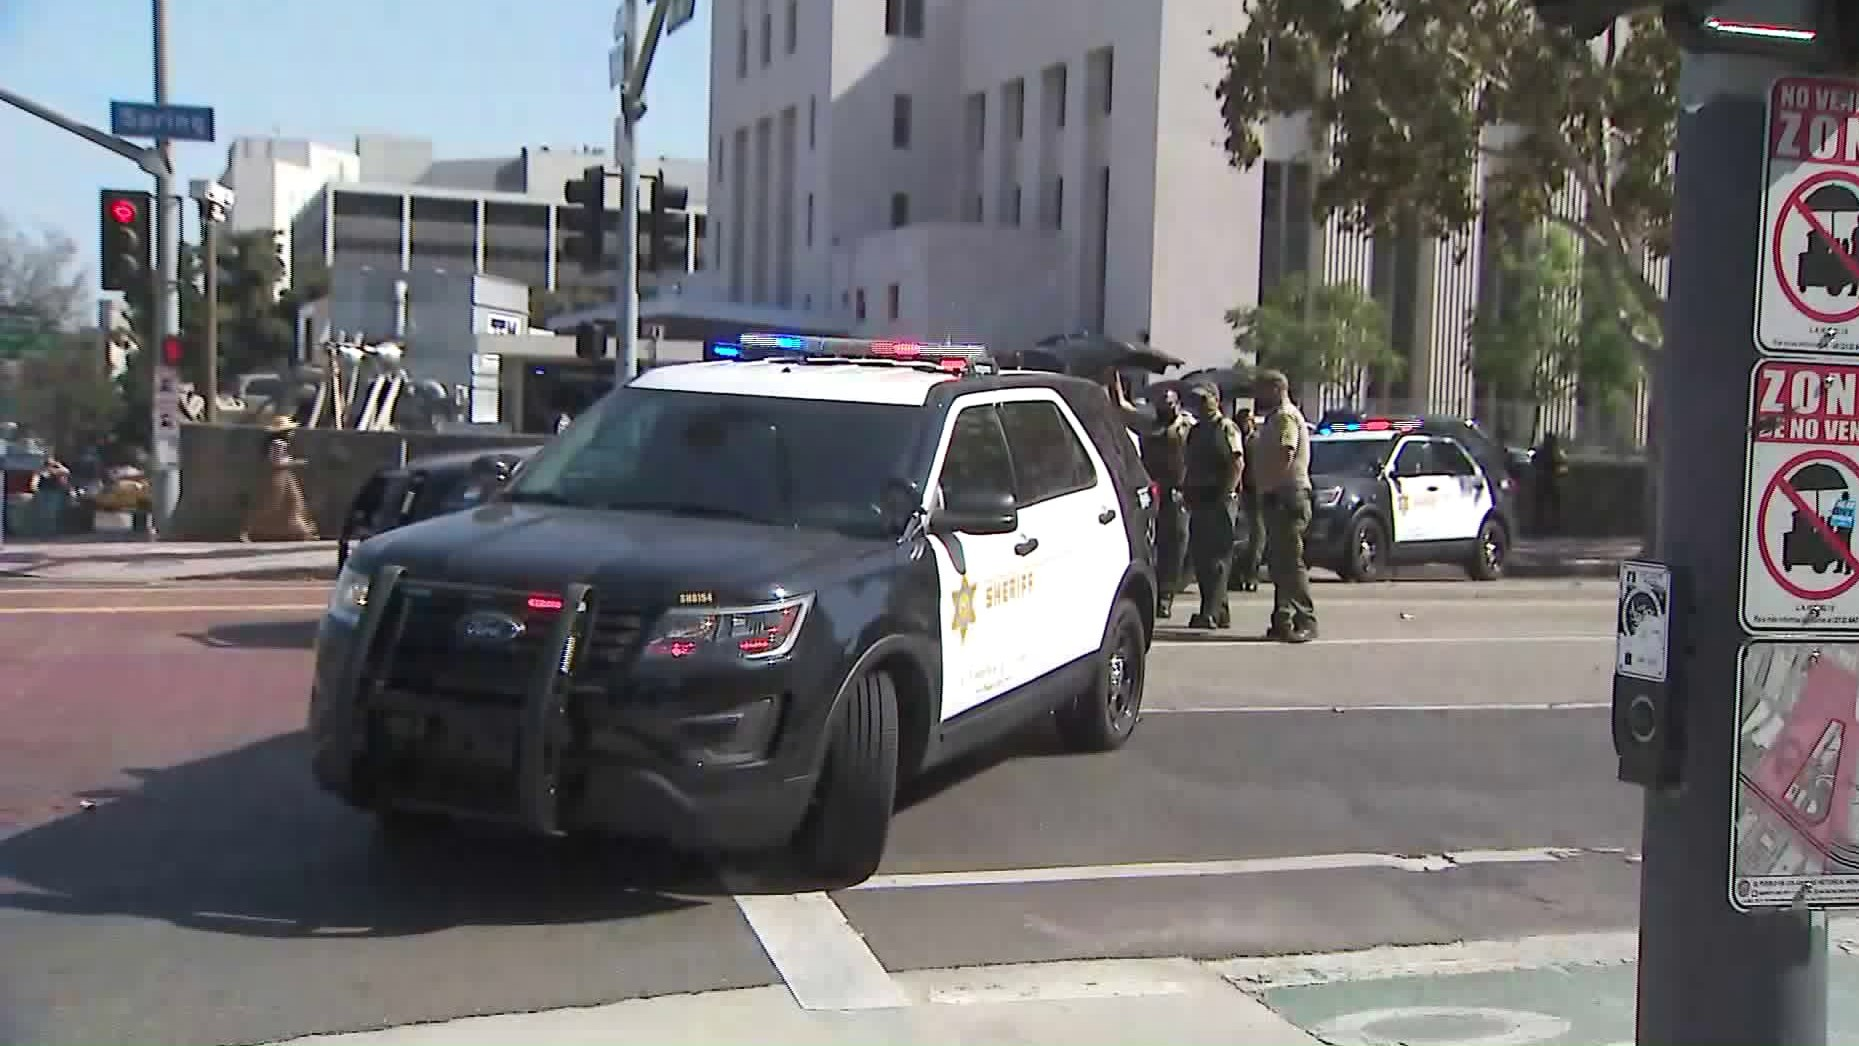 Sheriff's patrol units block off a downtown L.A. street to traffic ahead of anticipated protests in the Breonna Taylor case on Sept. 23, 2020. (KTLA)